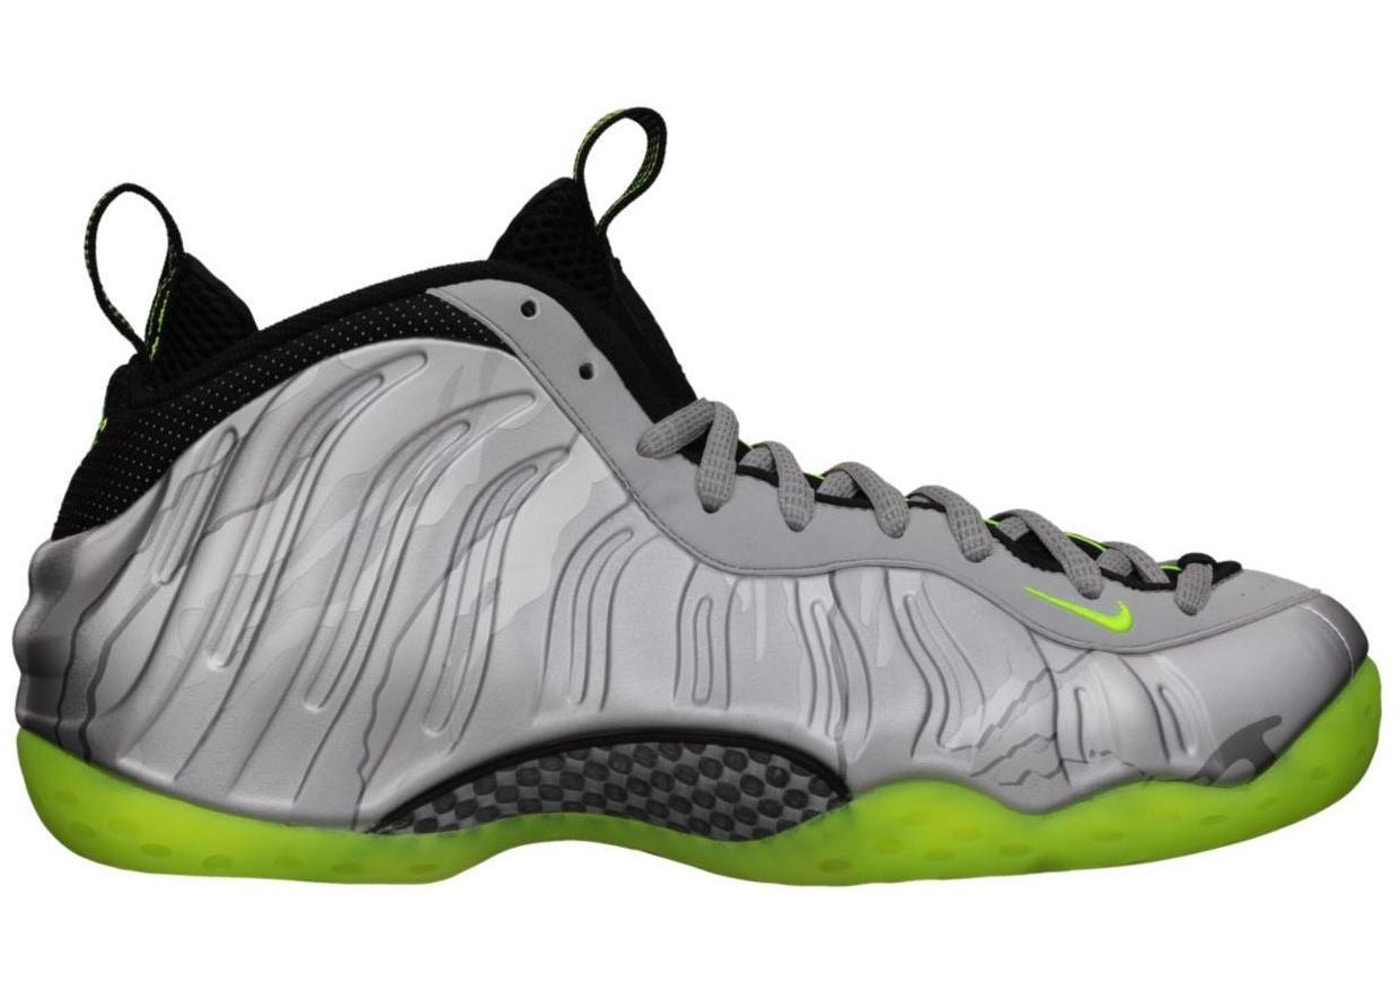 new concept fa16c 28b60 Air Foamposite One Silver Volt Camo - 575420-004